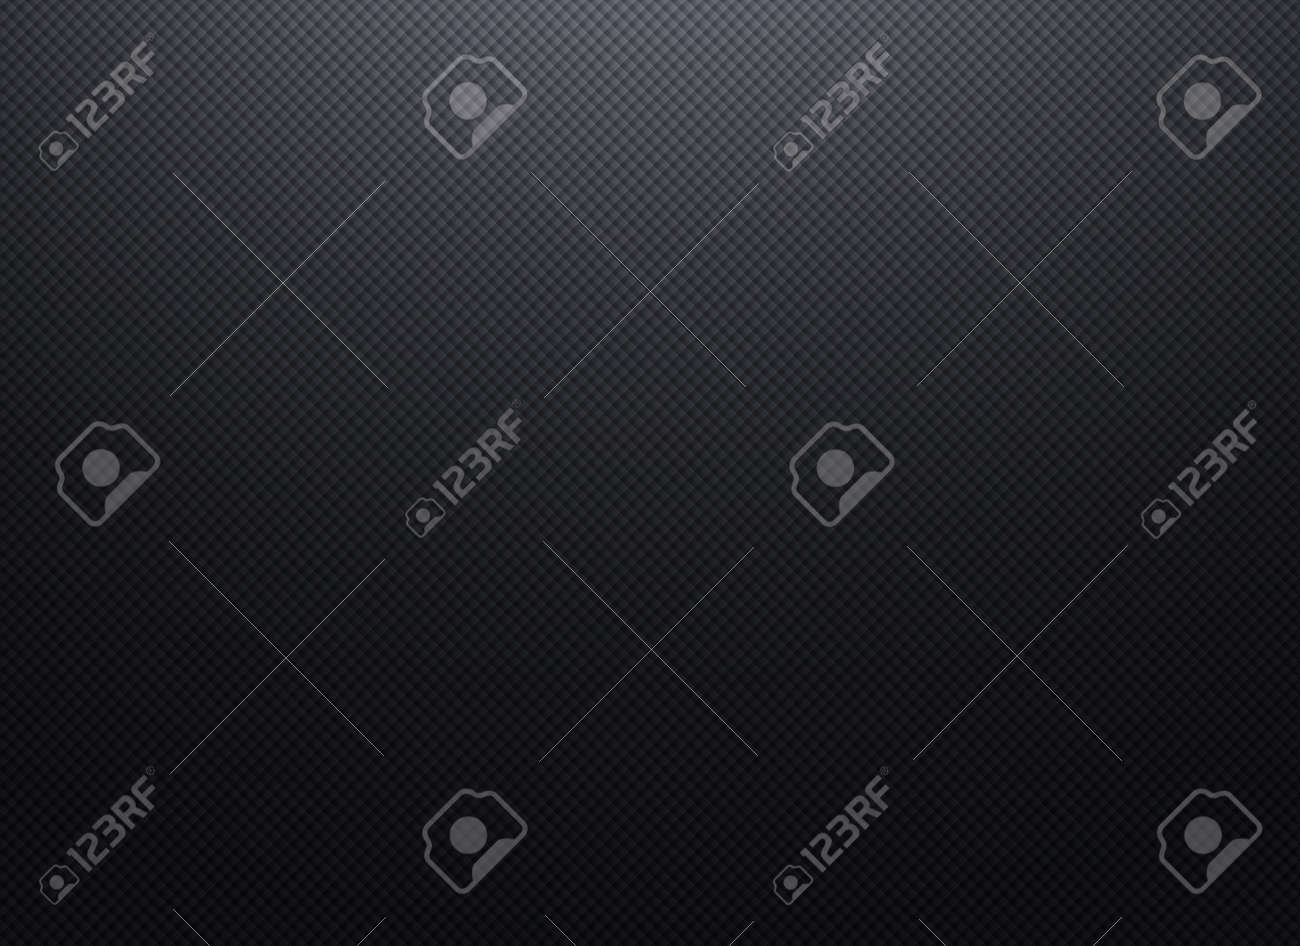 Black carbon fiber composite background. Dark abstract texture with diagonal lines. - 163469750